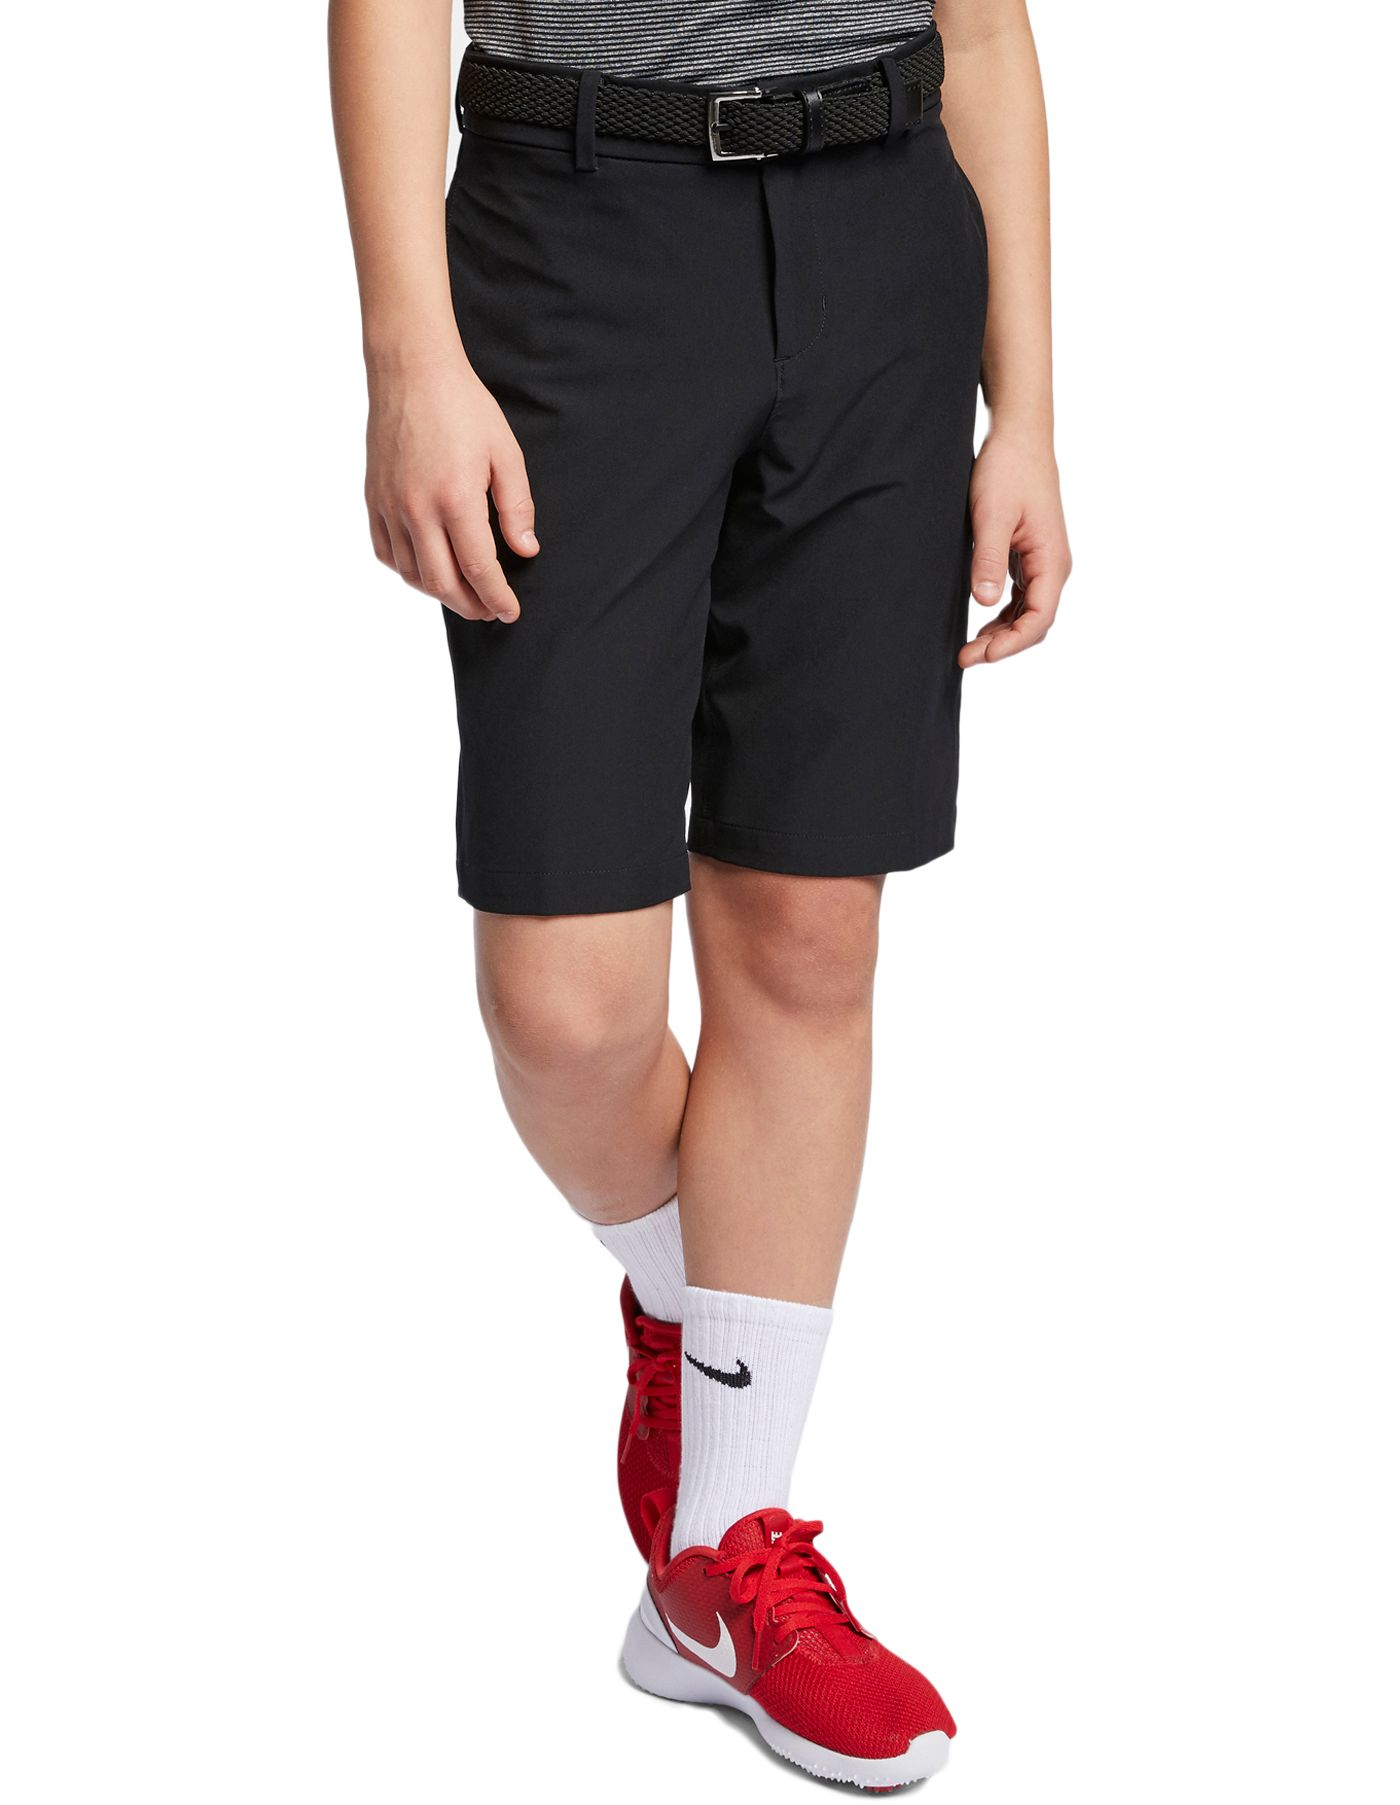 Nike Boys' Hybrid Flex Golf Shorts